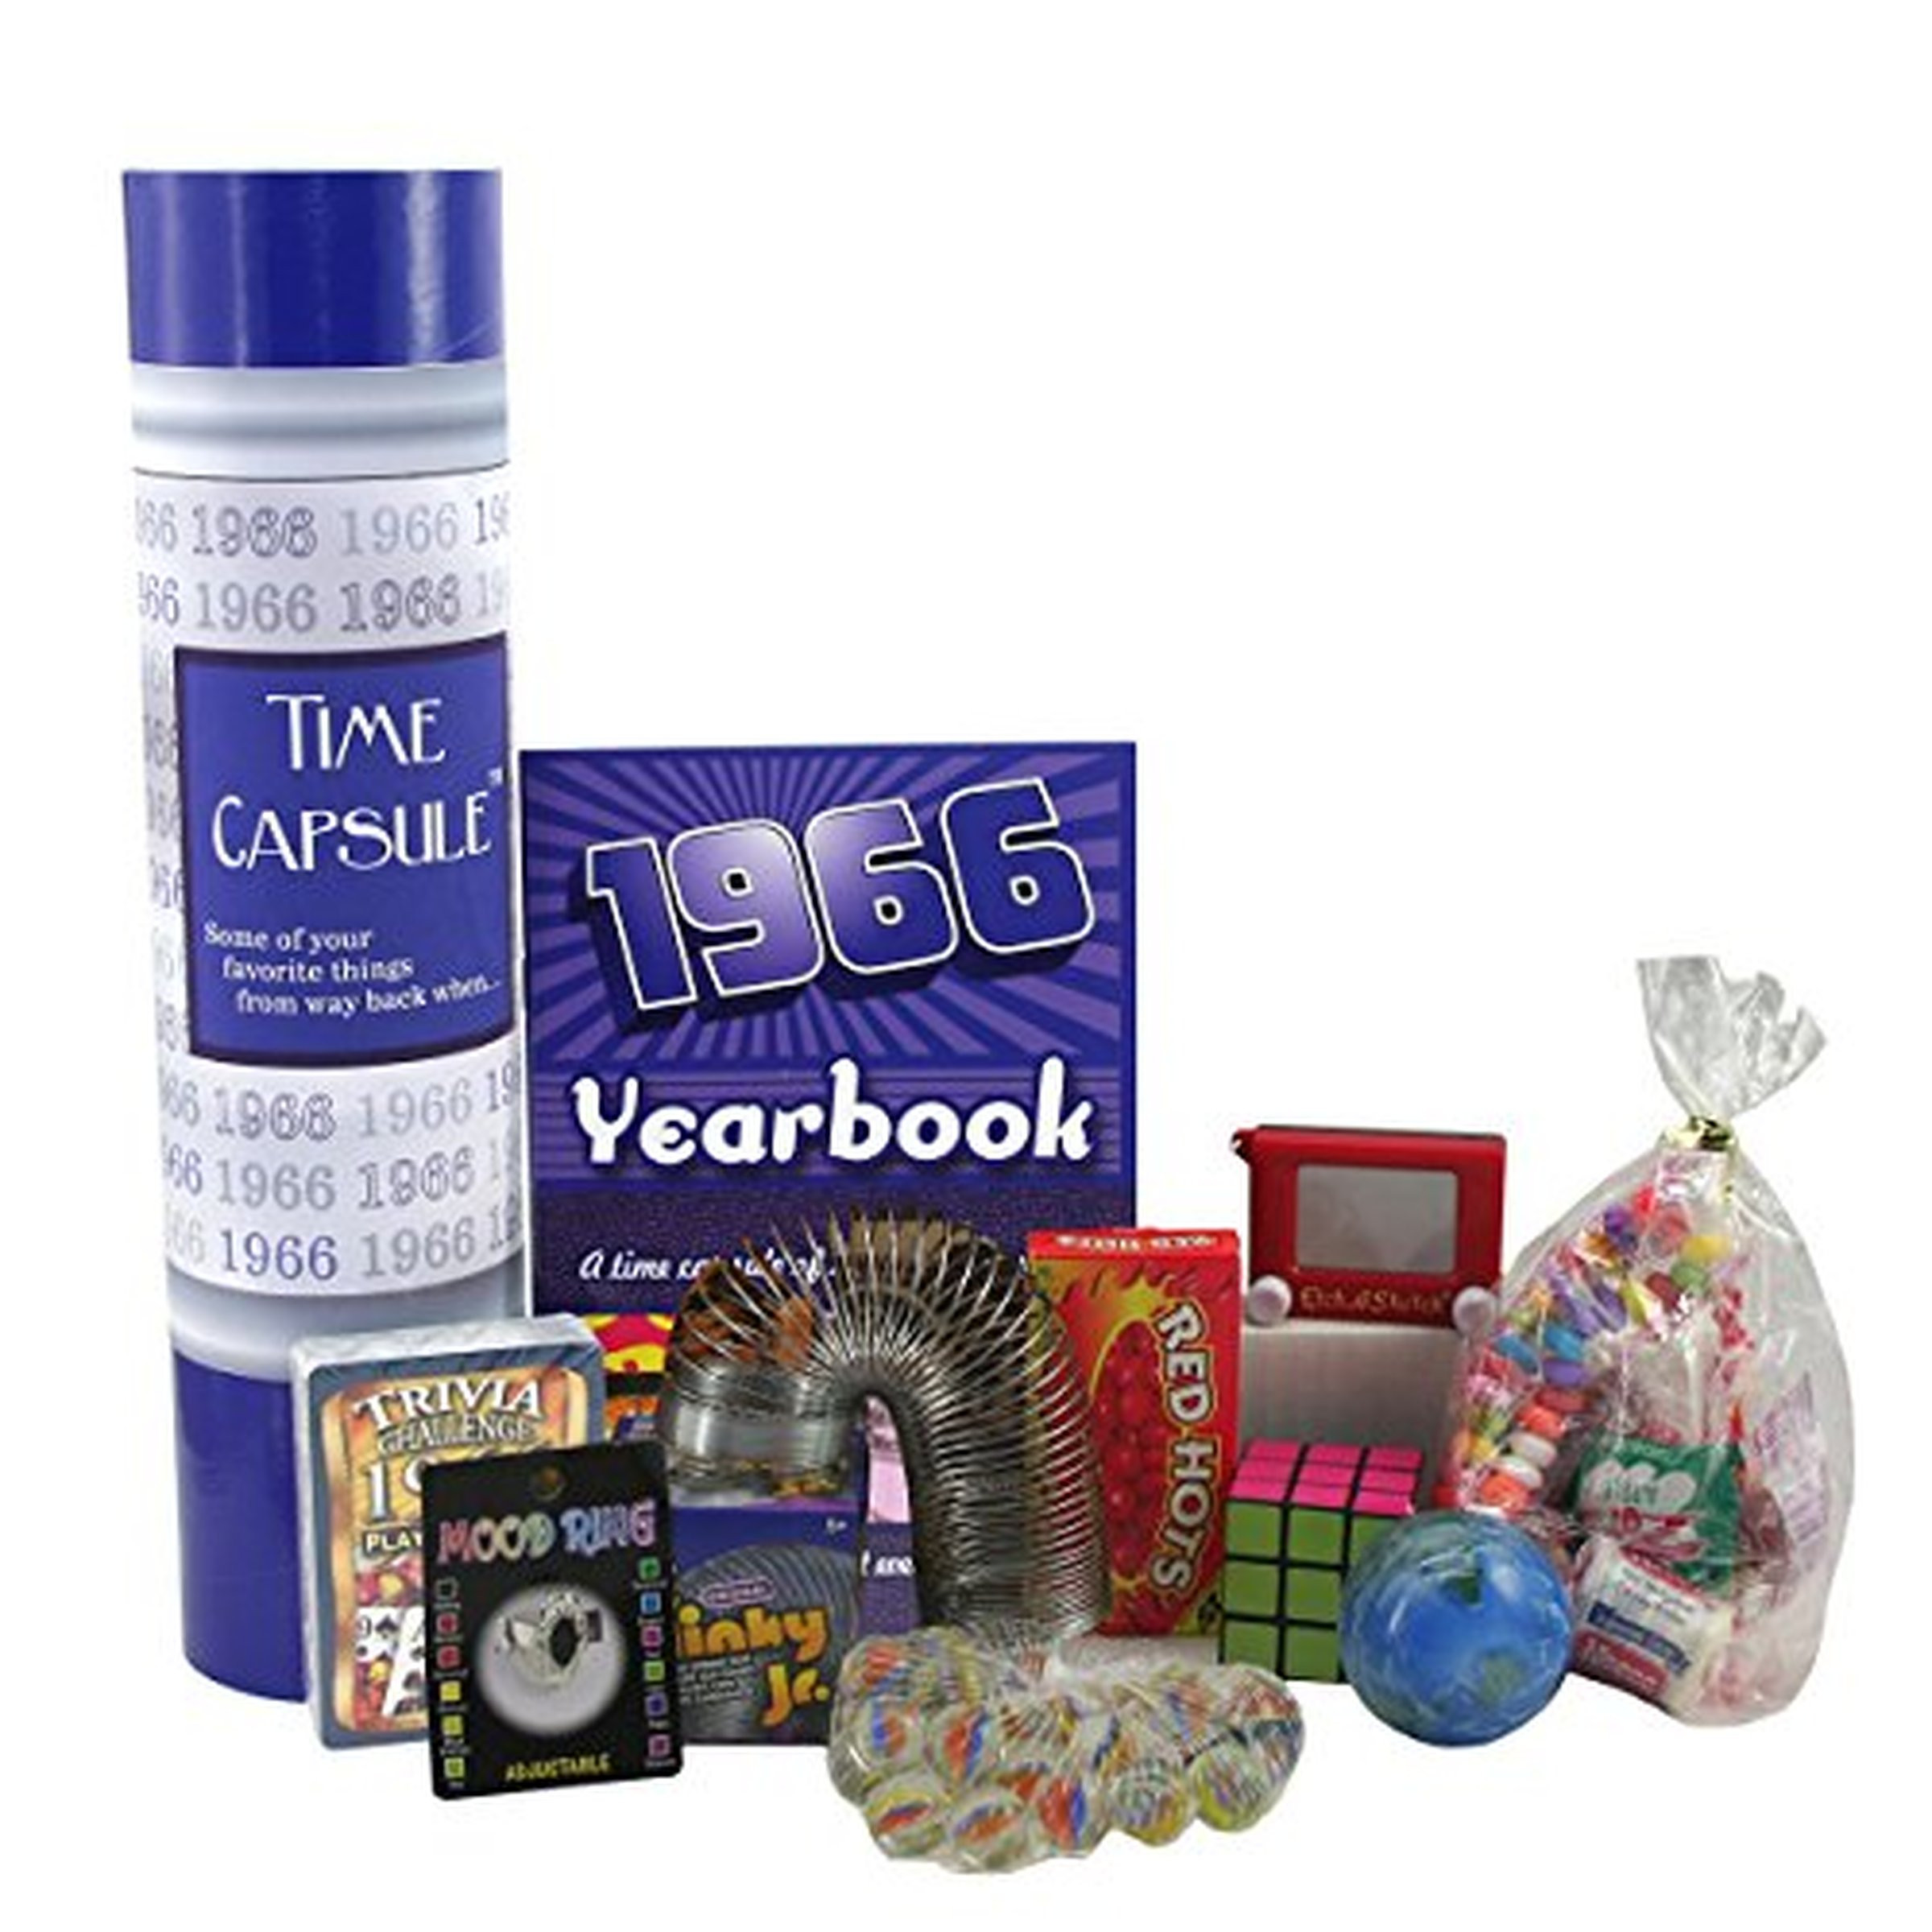 Best ideas about 50th Birthday Gifts For Men . Save or Pin 1966 Time Capsule 50th Birthday Gift for Men or Women Now.